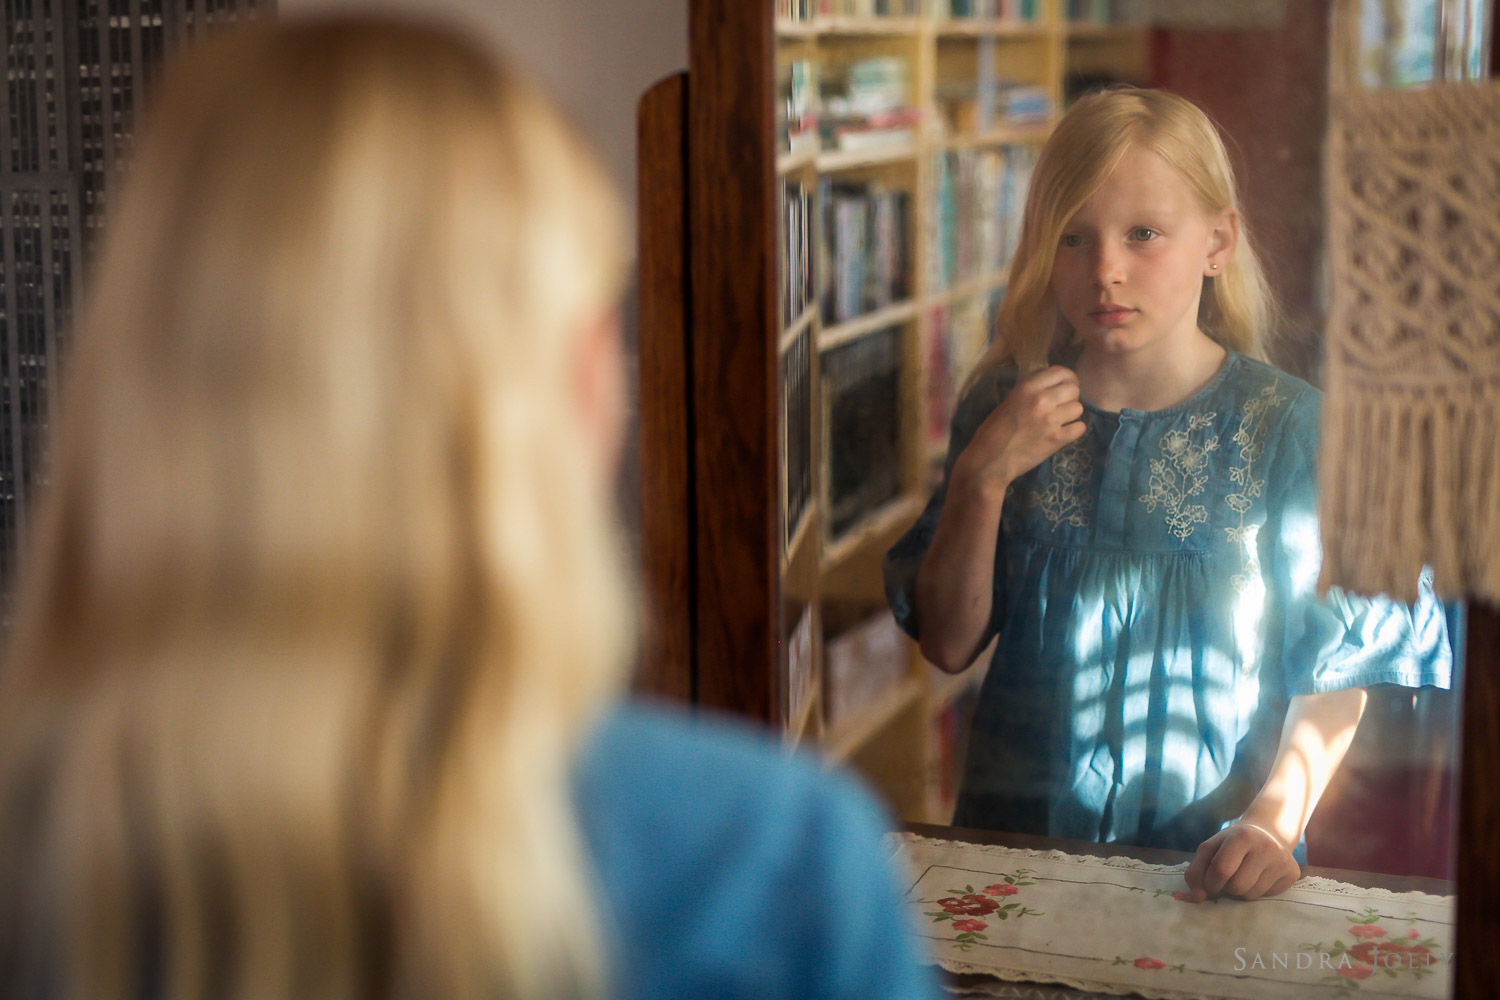 portrait-of-young-girl-in-mirror-familjefotograf-Stockholm.jpg